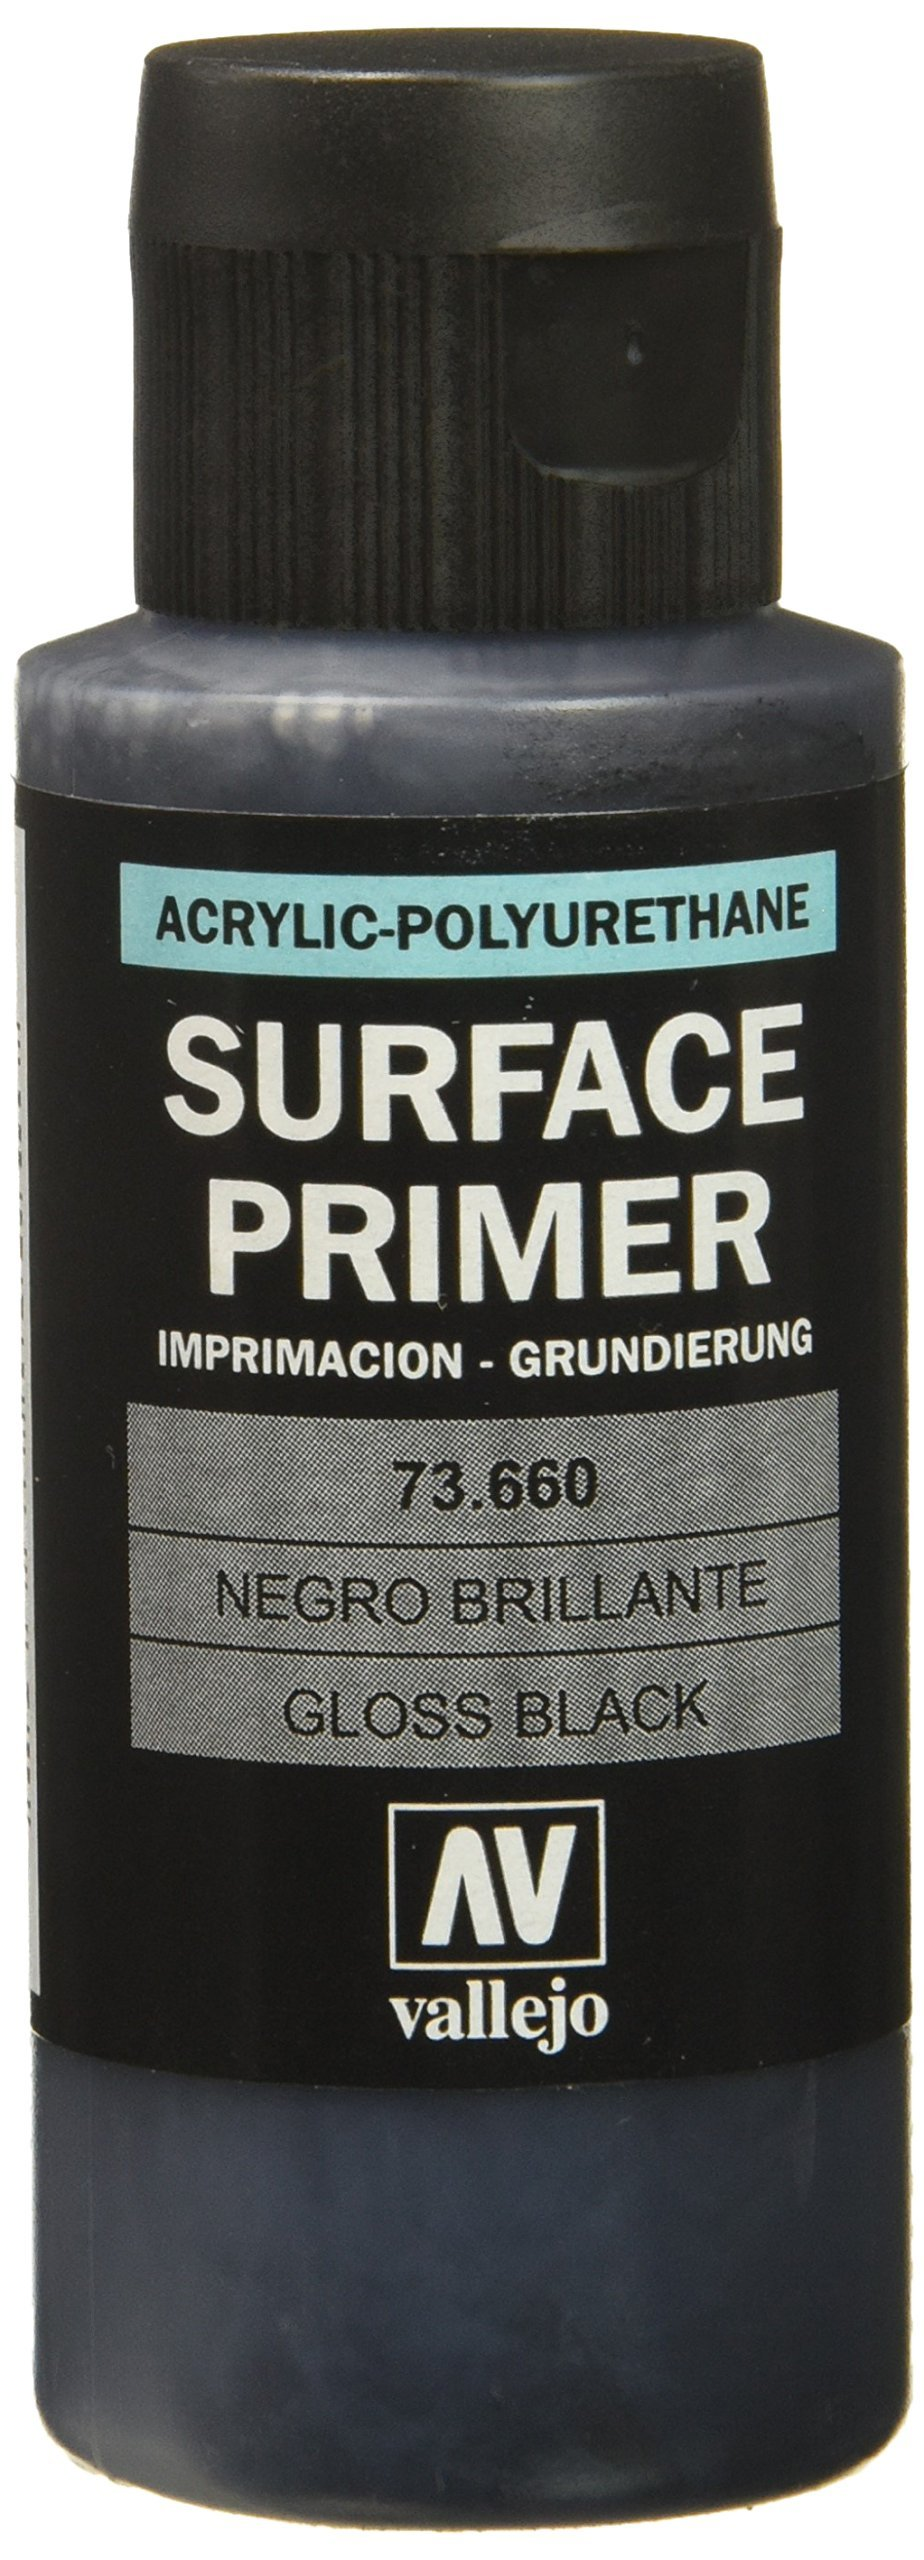 "Acrylicos Vallejo VJ73660 60 ml""Gloss Black Primer"" Metal Color"